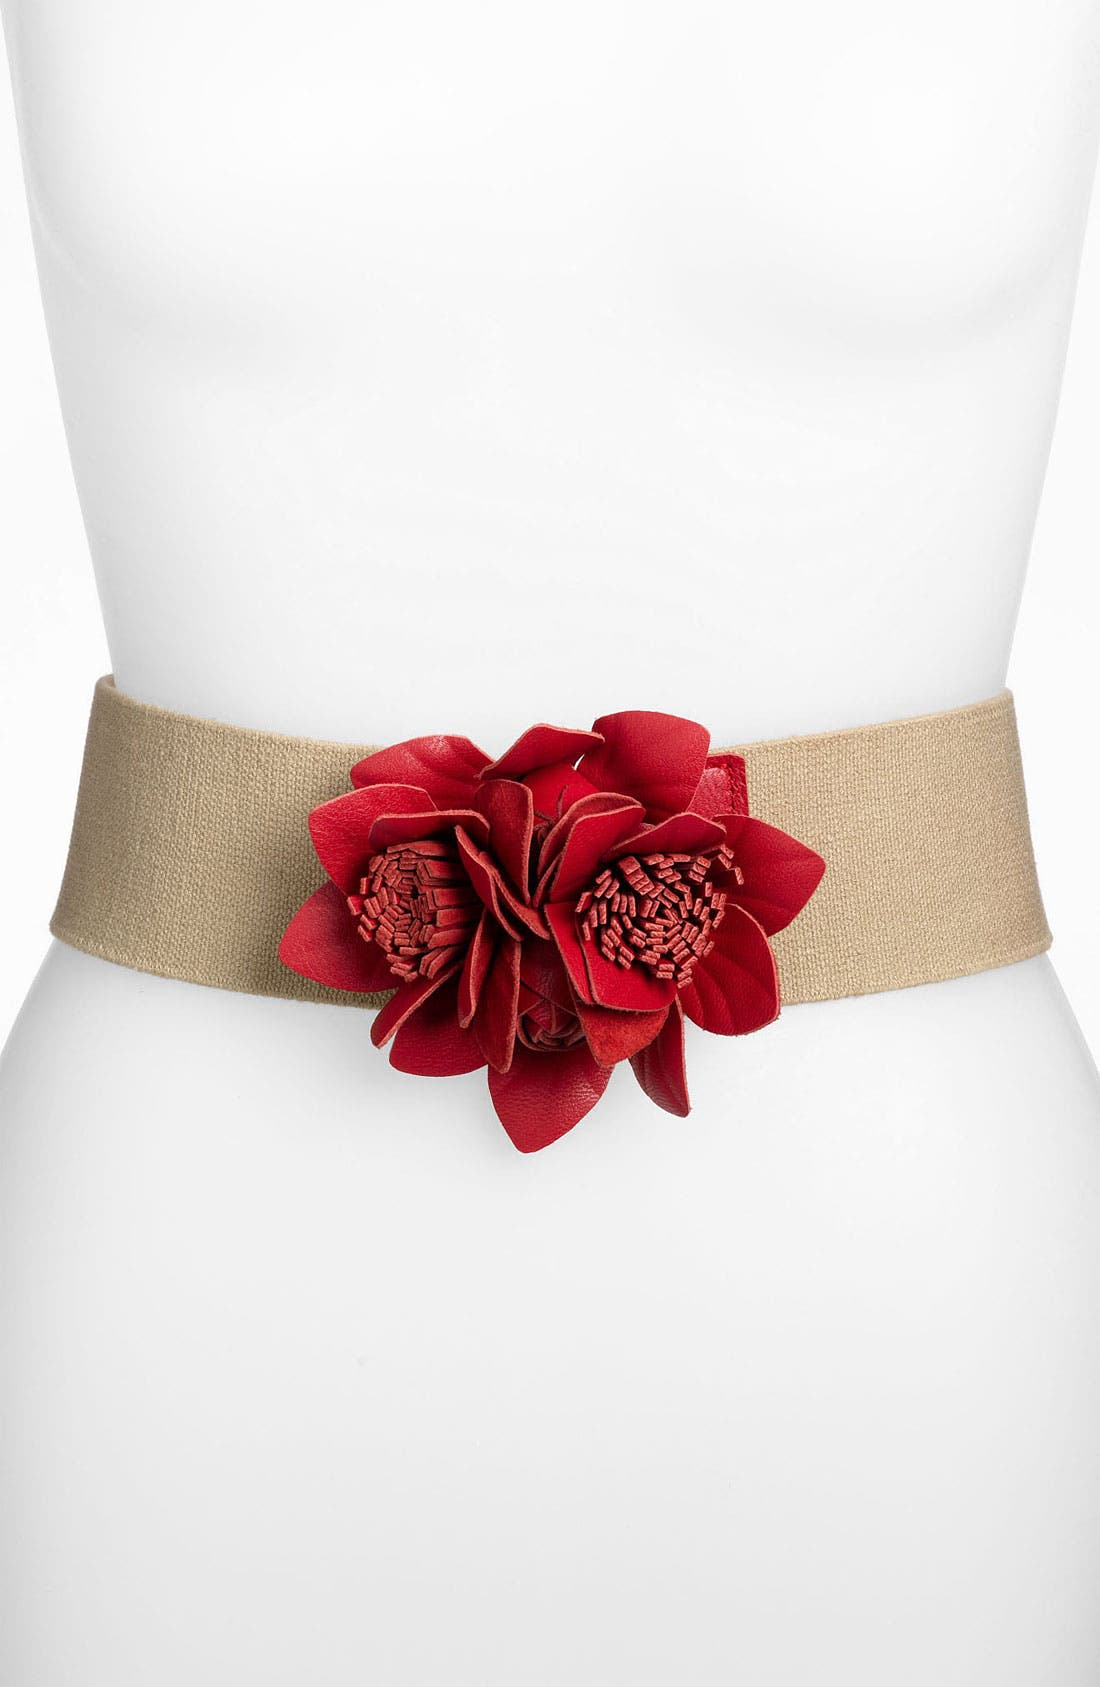 Alternate Image 1 Selected - Tarnish Floral Stretch Belt